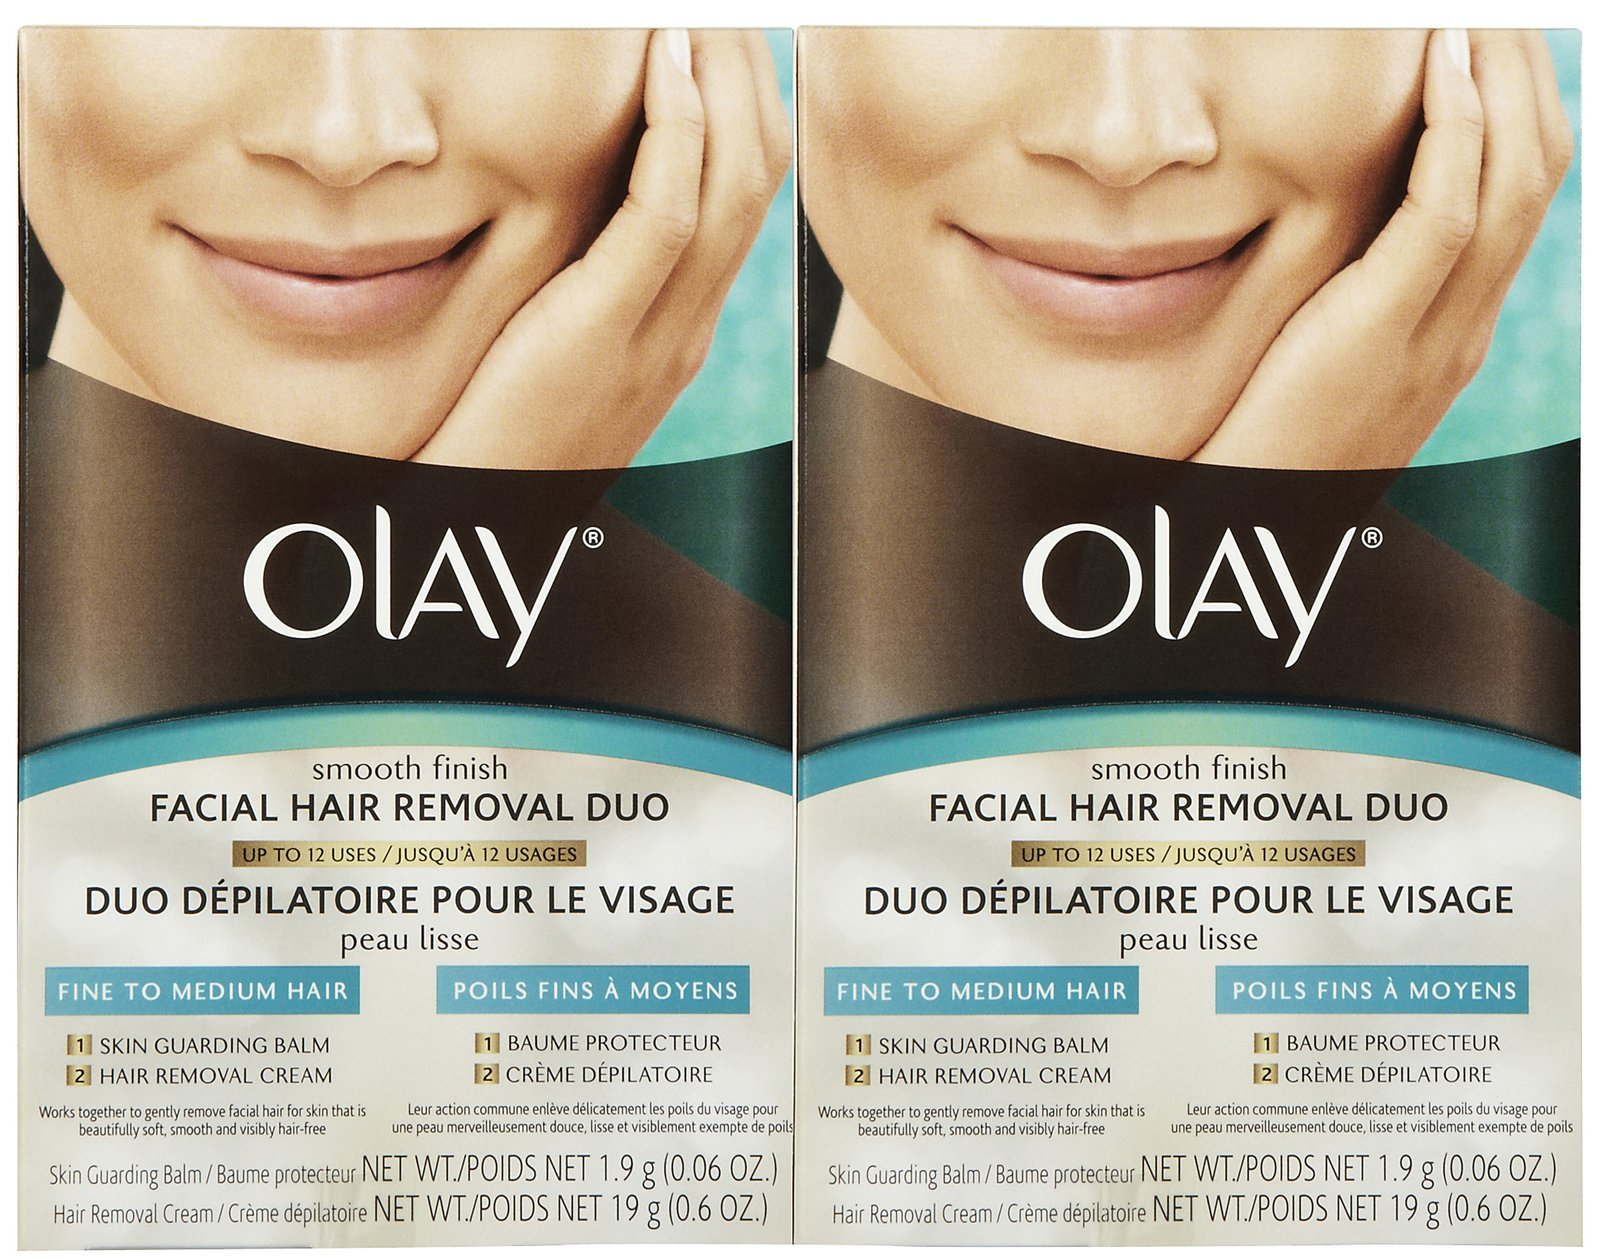 Olay Facial Hair Removal Duo - 2 pk by Olay